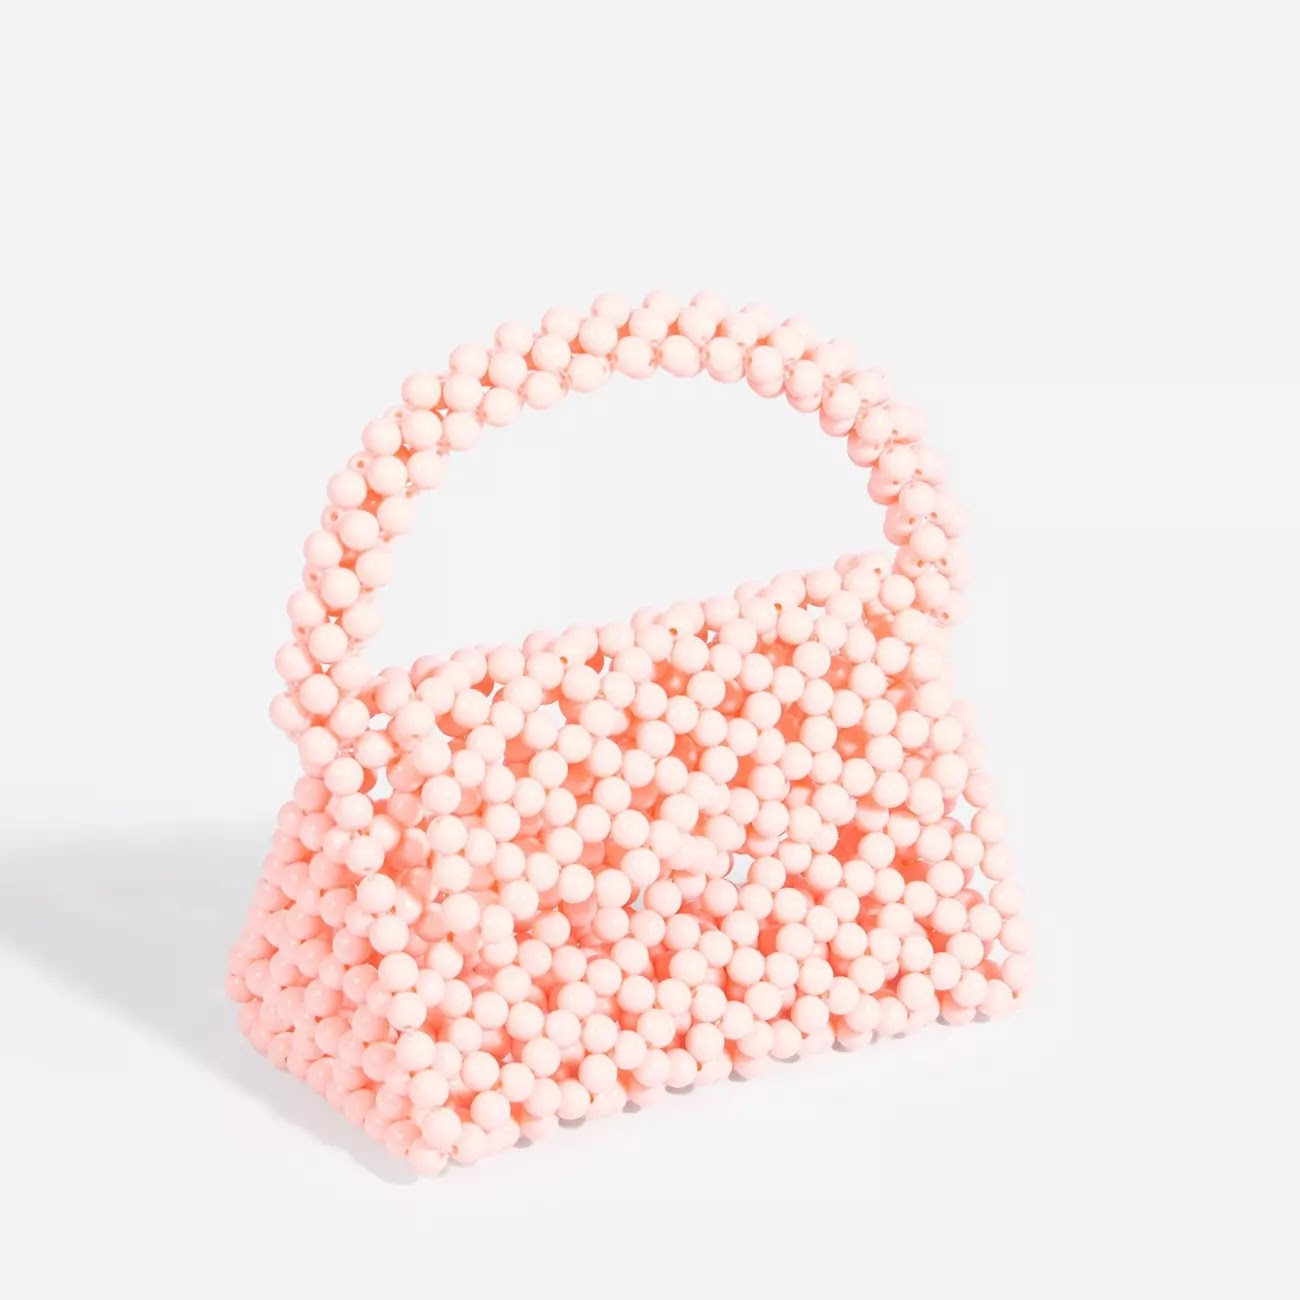 https://www.awin1.com/cread.php?awinmid=7576&awinaffid=637679&ued=https%3A%2F%2Fego.co.uk%2Fbgc001-milly-beaded-grab-bag-in-orange.html